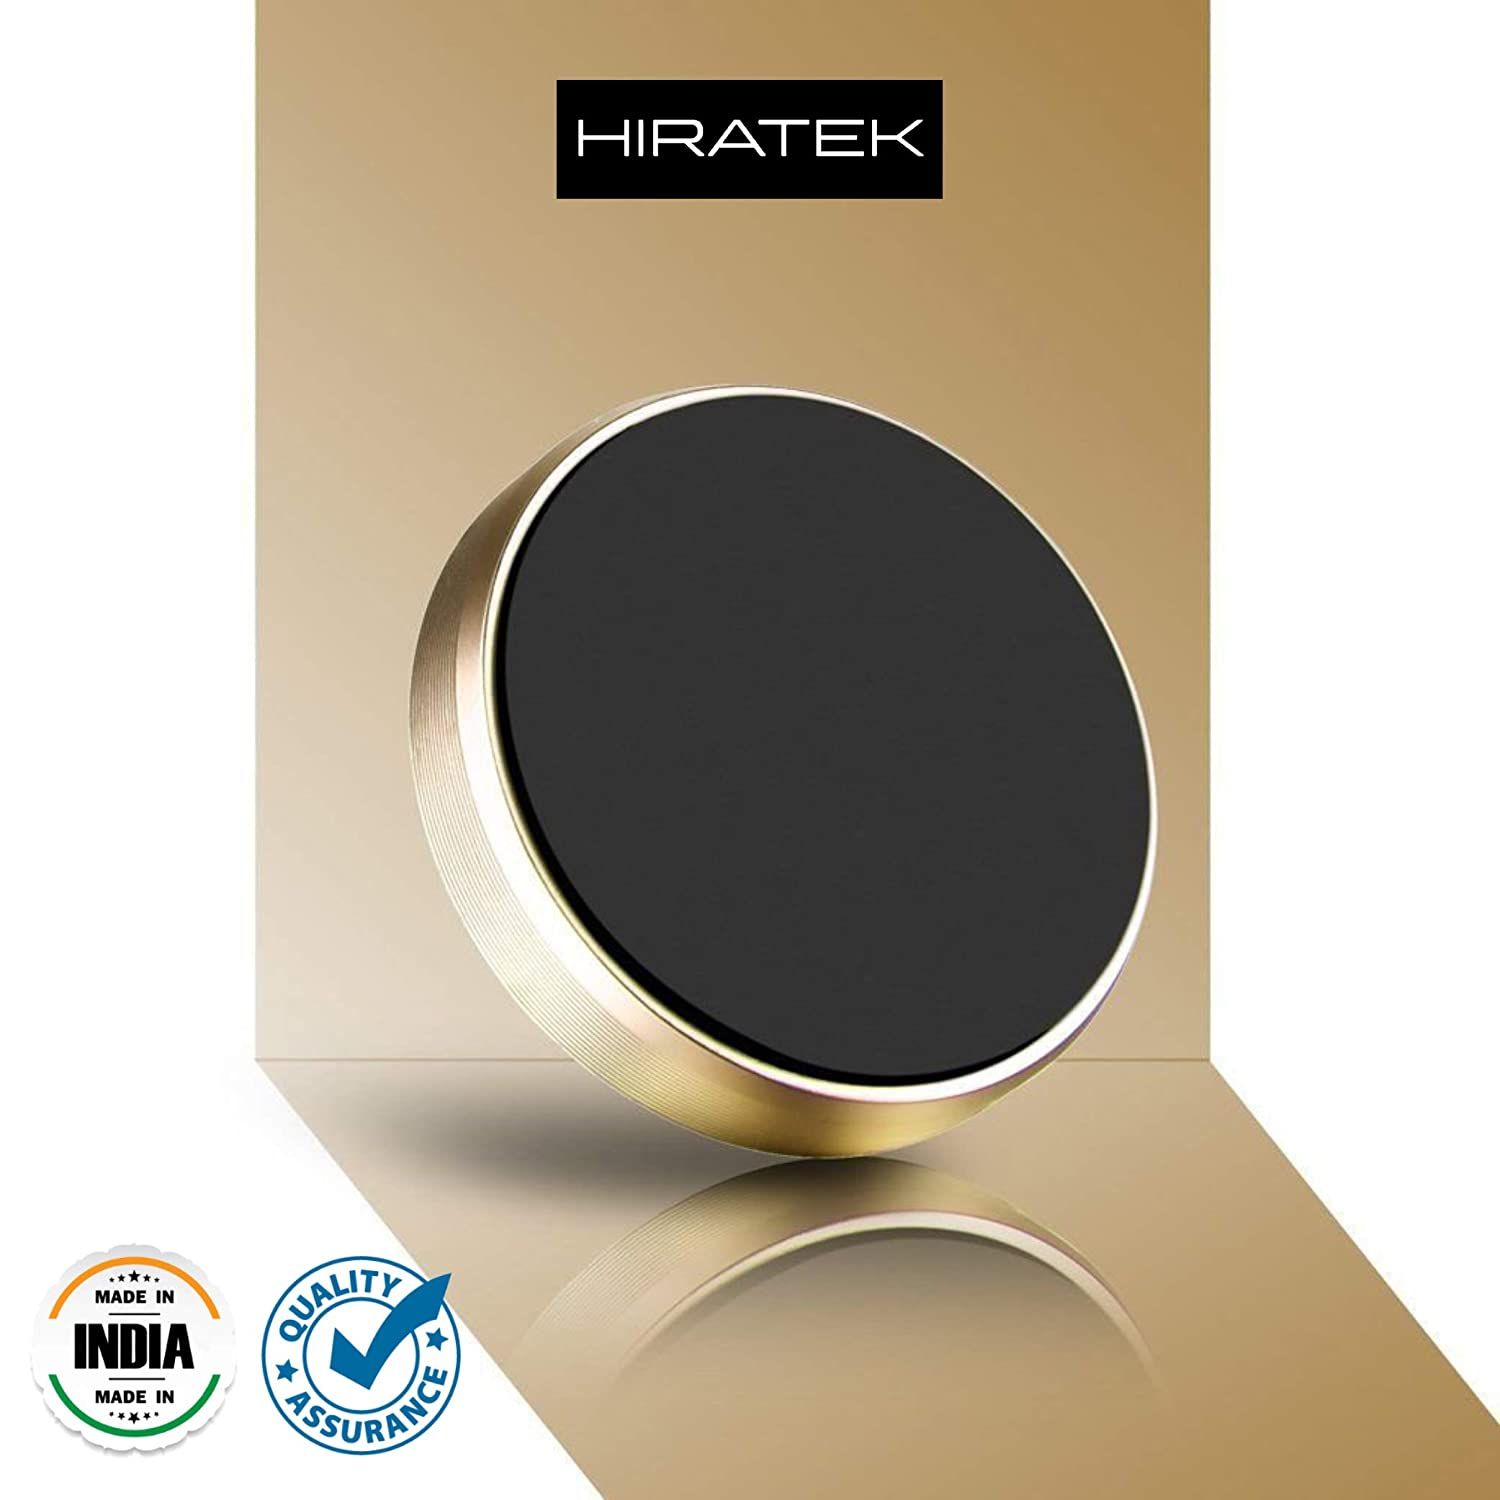 HIRATEK Aluminium, Alloy Metal Portable Dashboard Magnetic Car Mobile  Holder for iPhone X, 8, 8Plus, 7, 6, 6S, Samsung S9, Plus S7 and S6